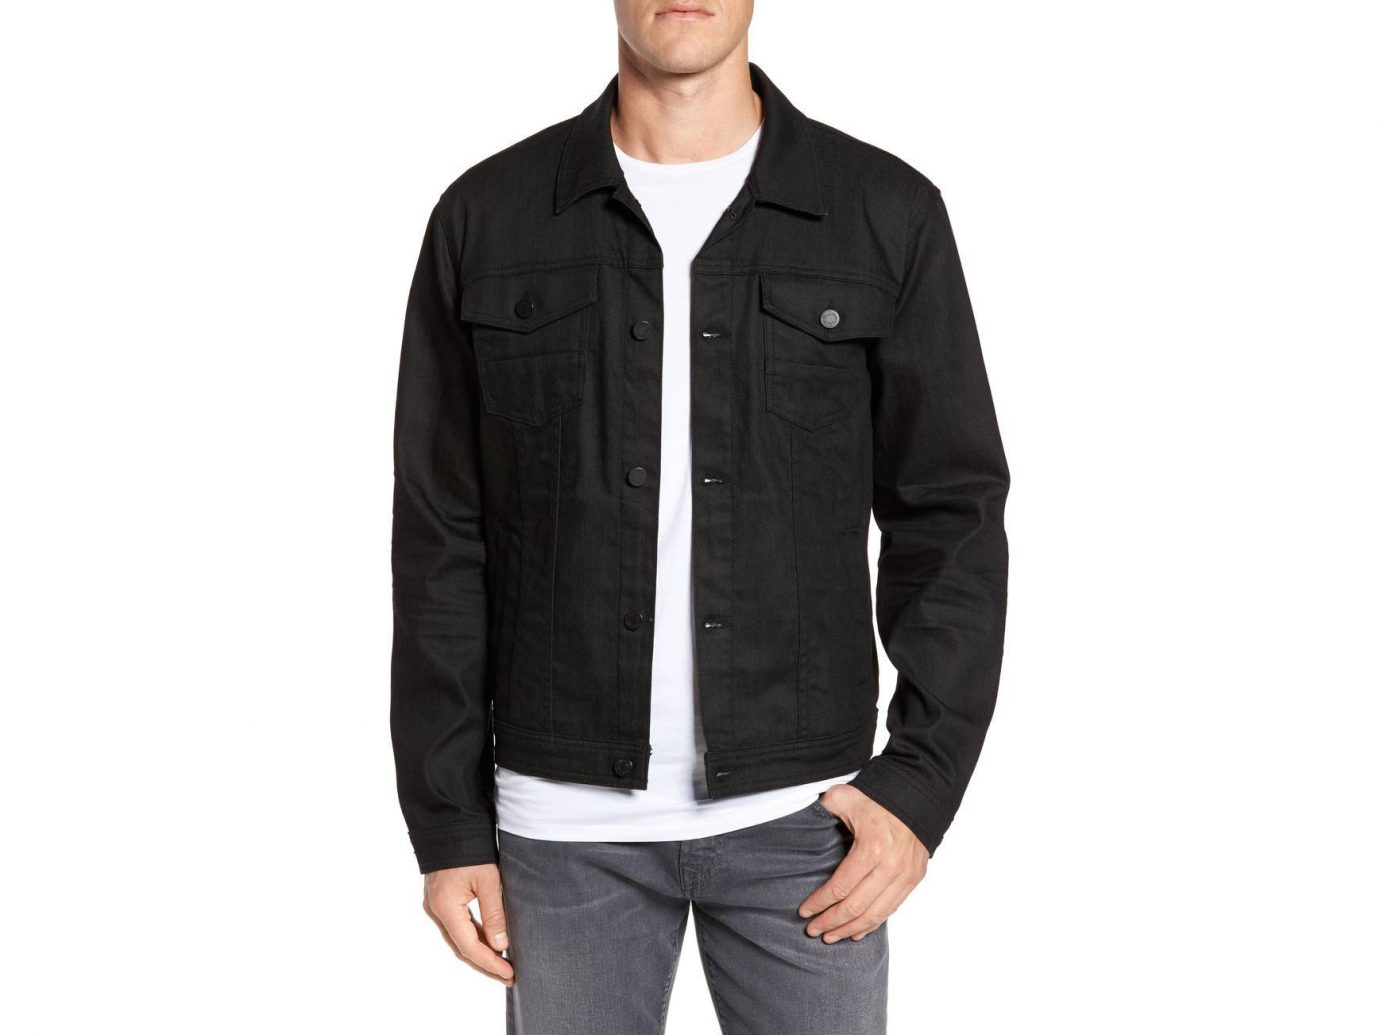 Style + Design Travel Shop person man standing jacket posing sleeve wearing outerwear suit leather jacket product pocket dressed work-clothing